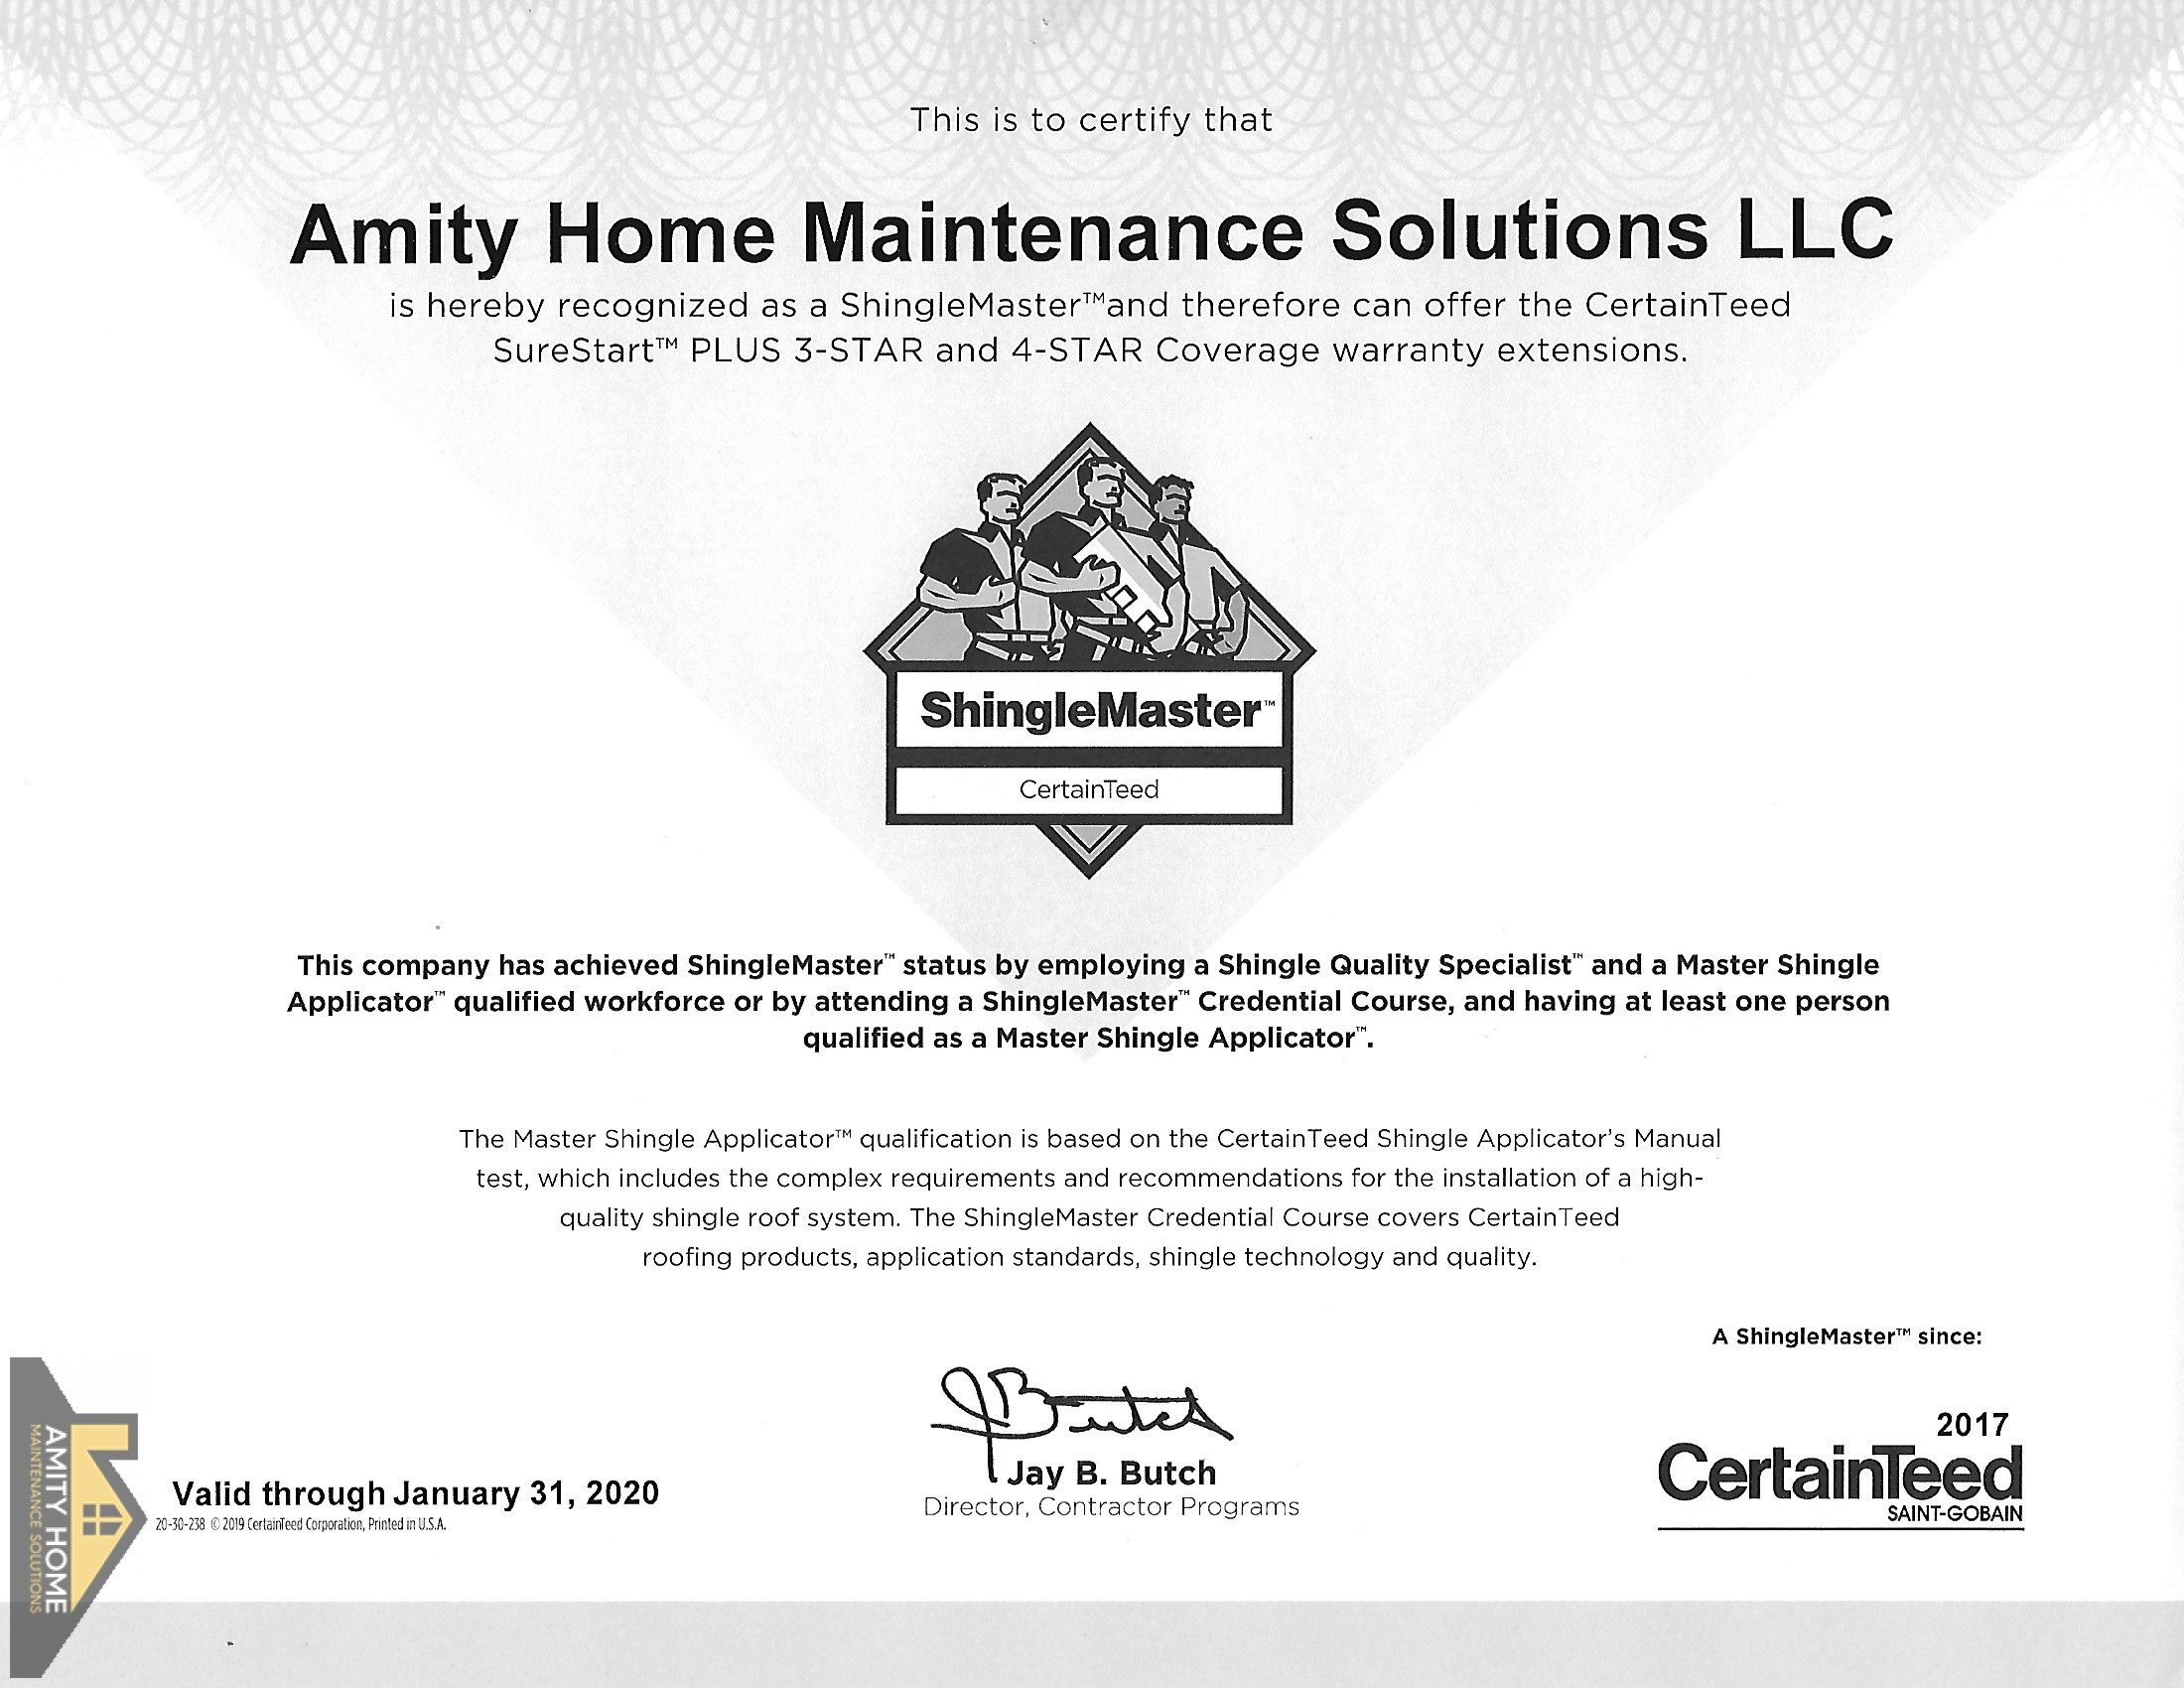 Certifications Amity Home Maintenance Solutions